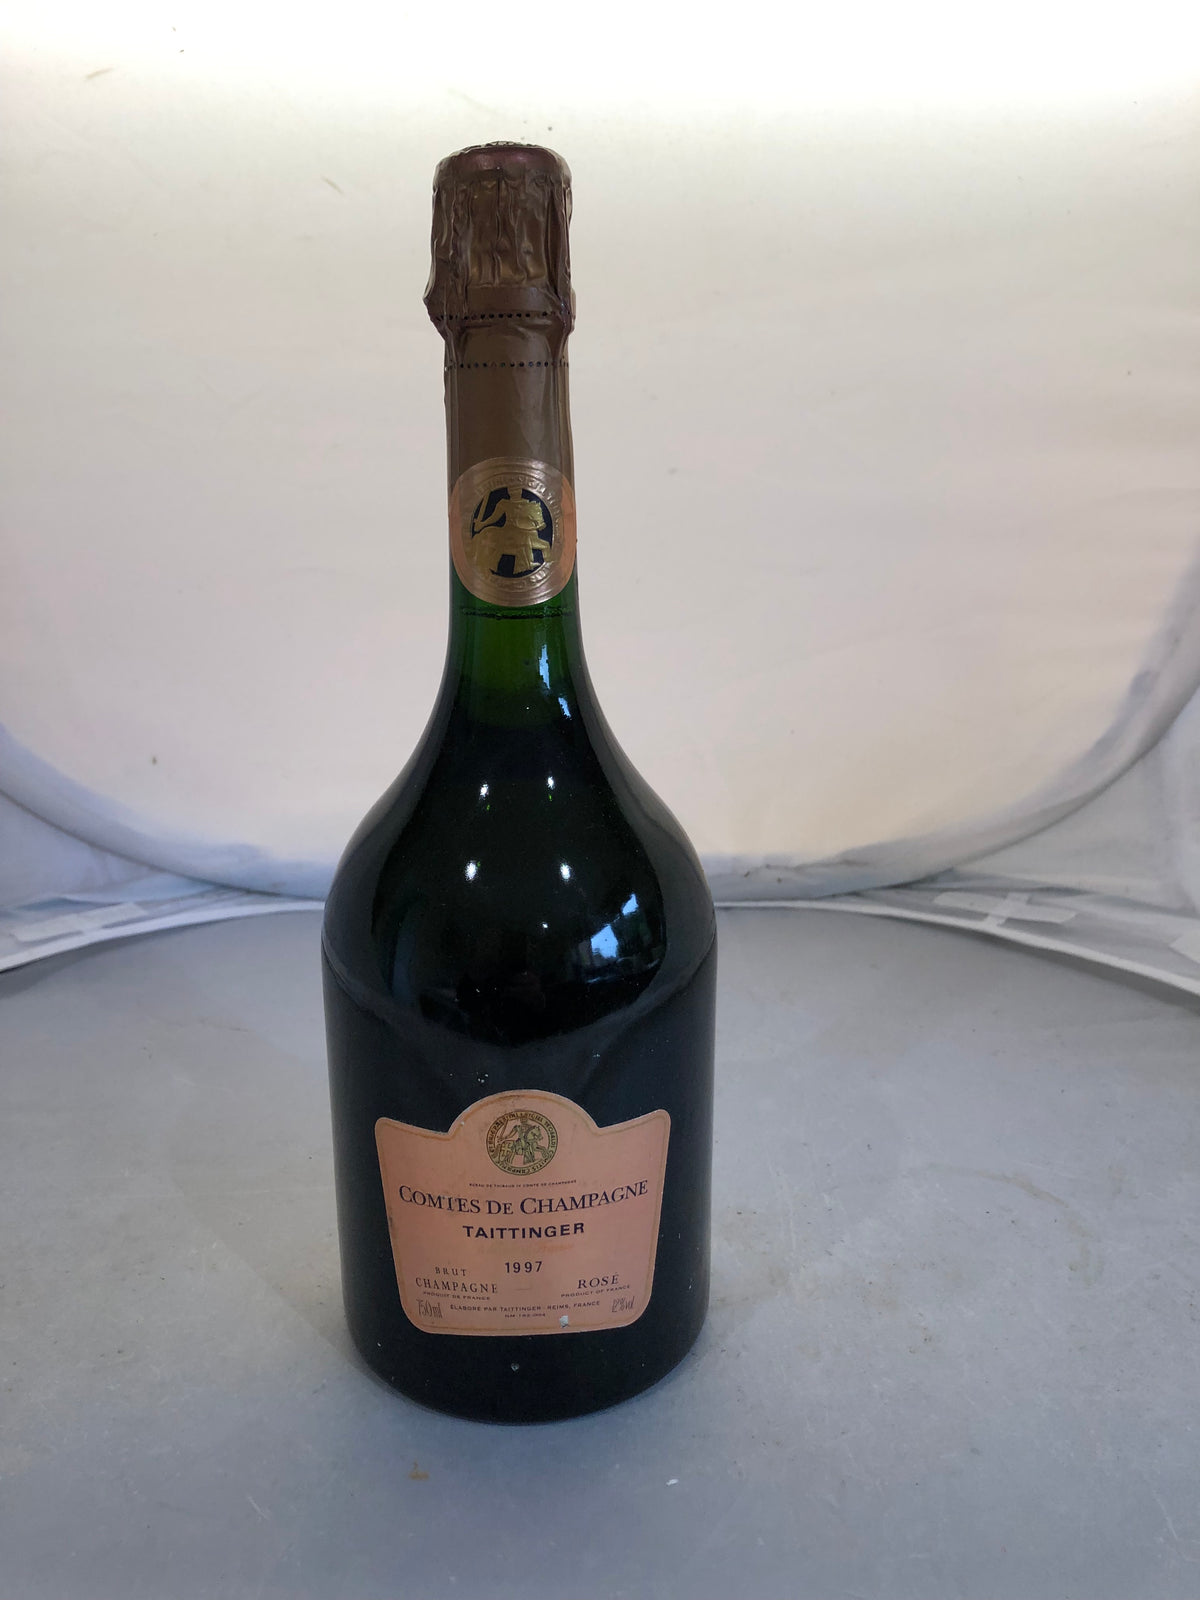 Taittinger Comtes de Champagne Rose 1997 - MWH Wines